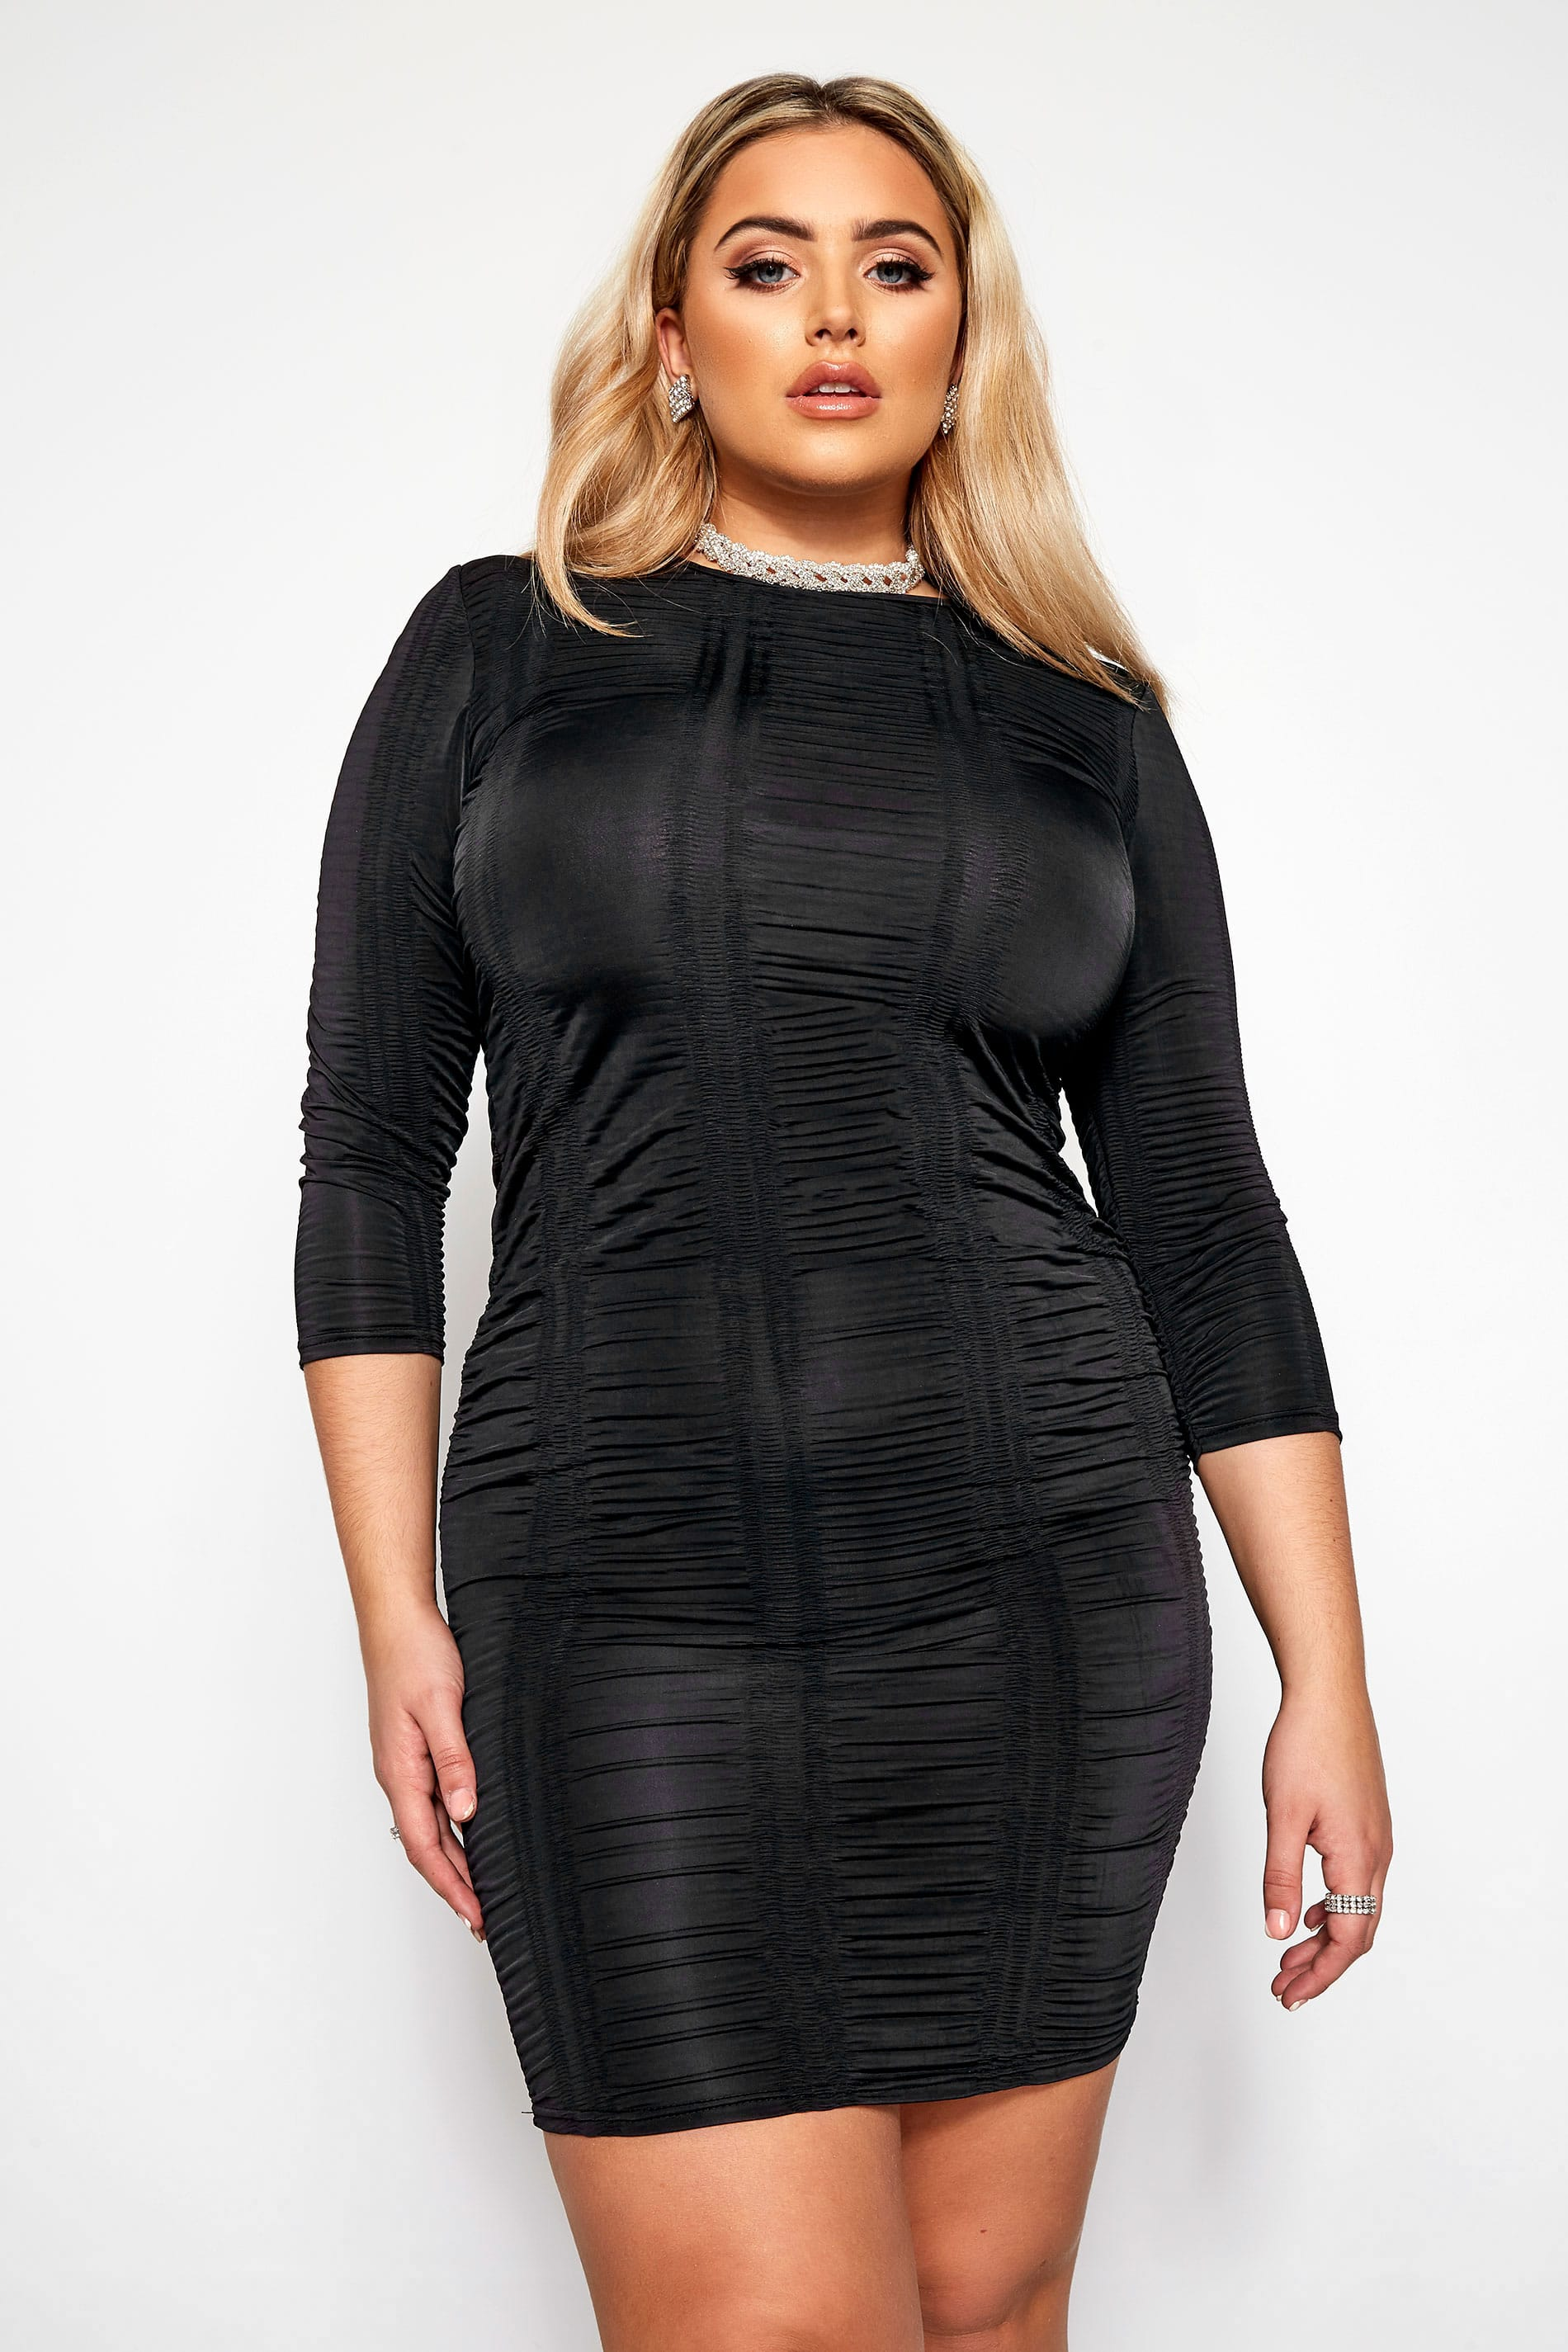 LIMITED COLLECTION Black Ruched Bodycon Dress